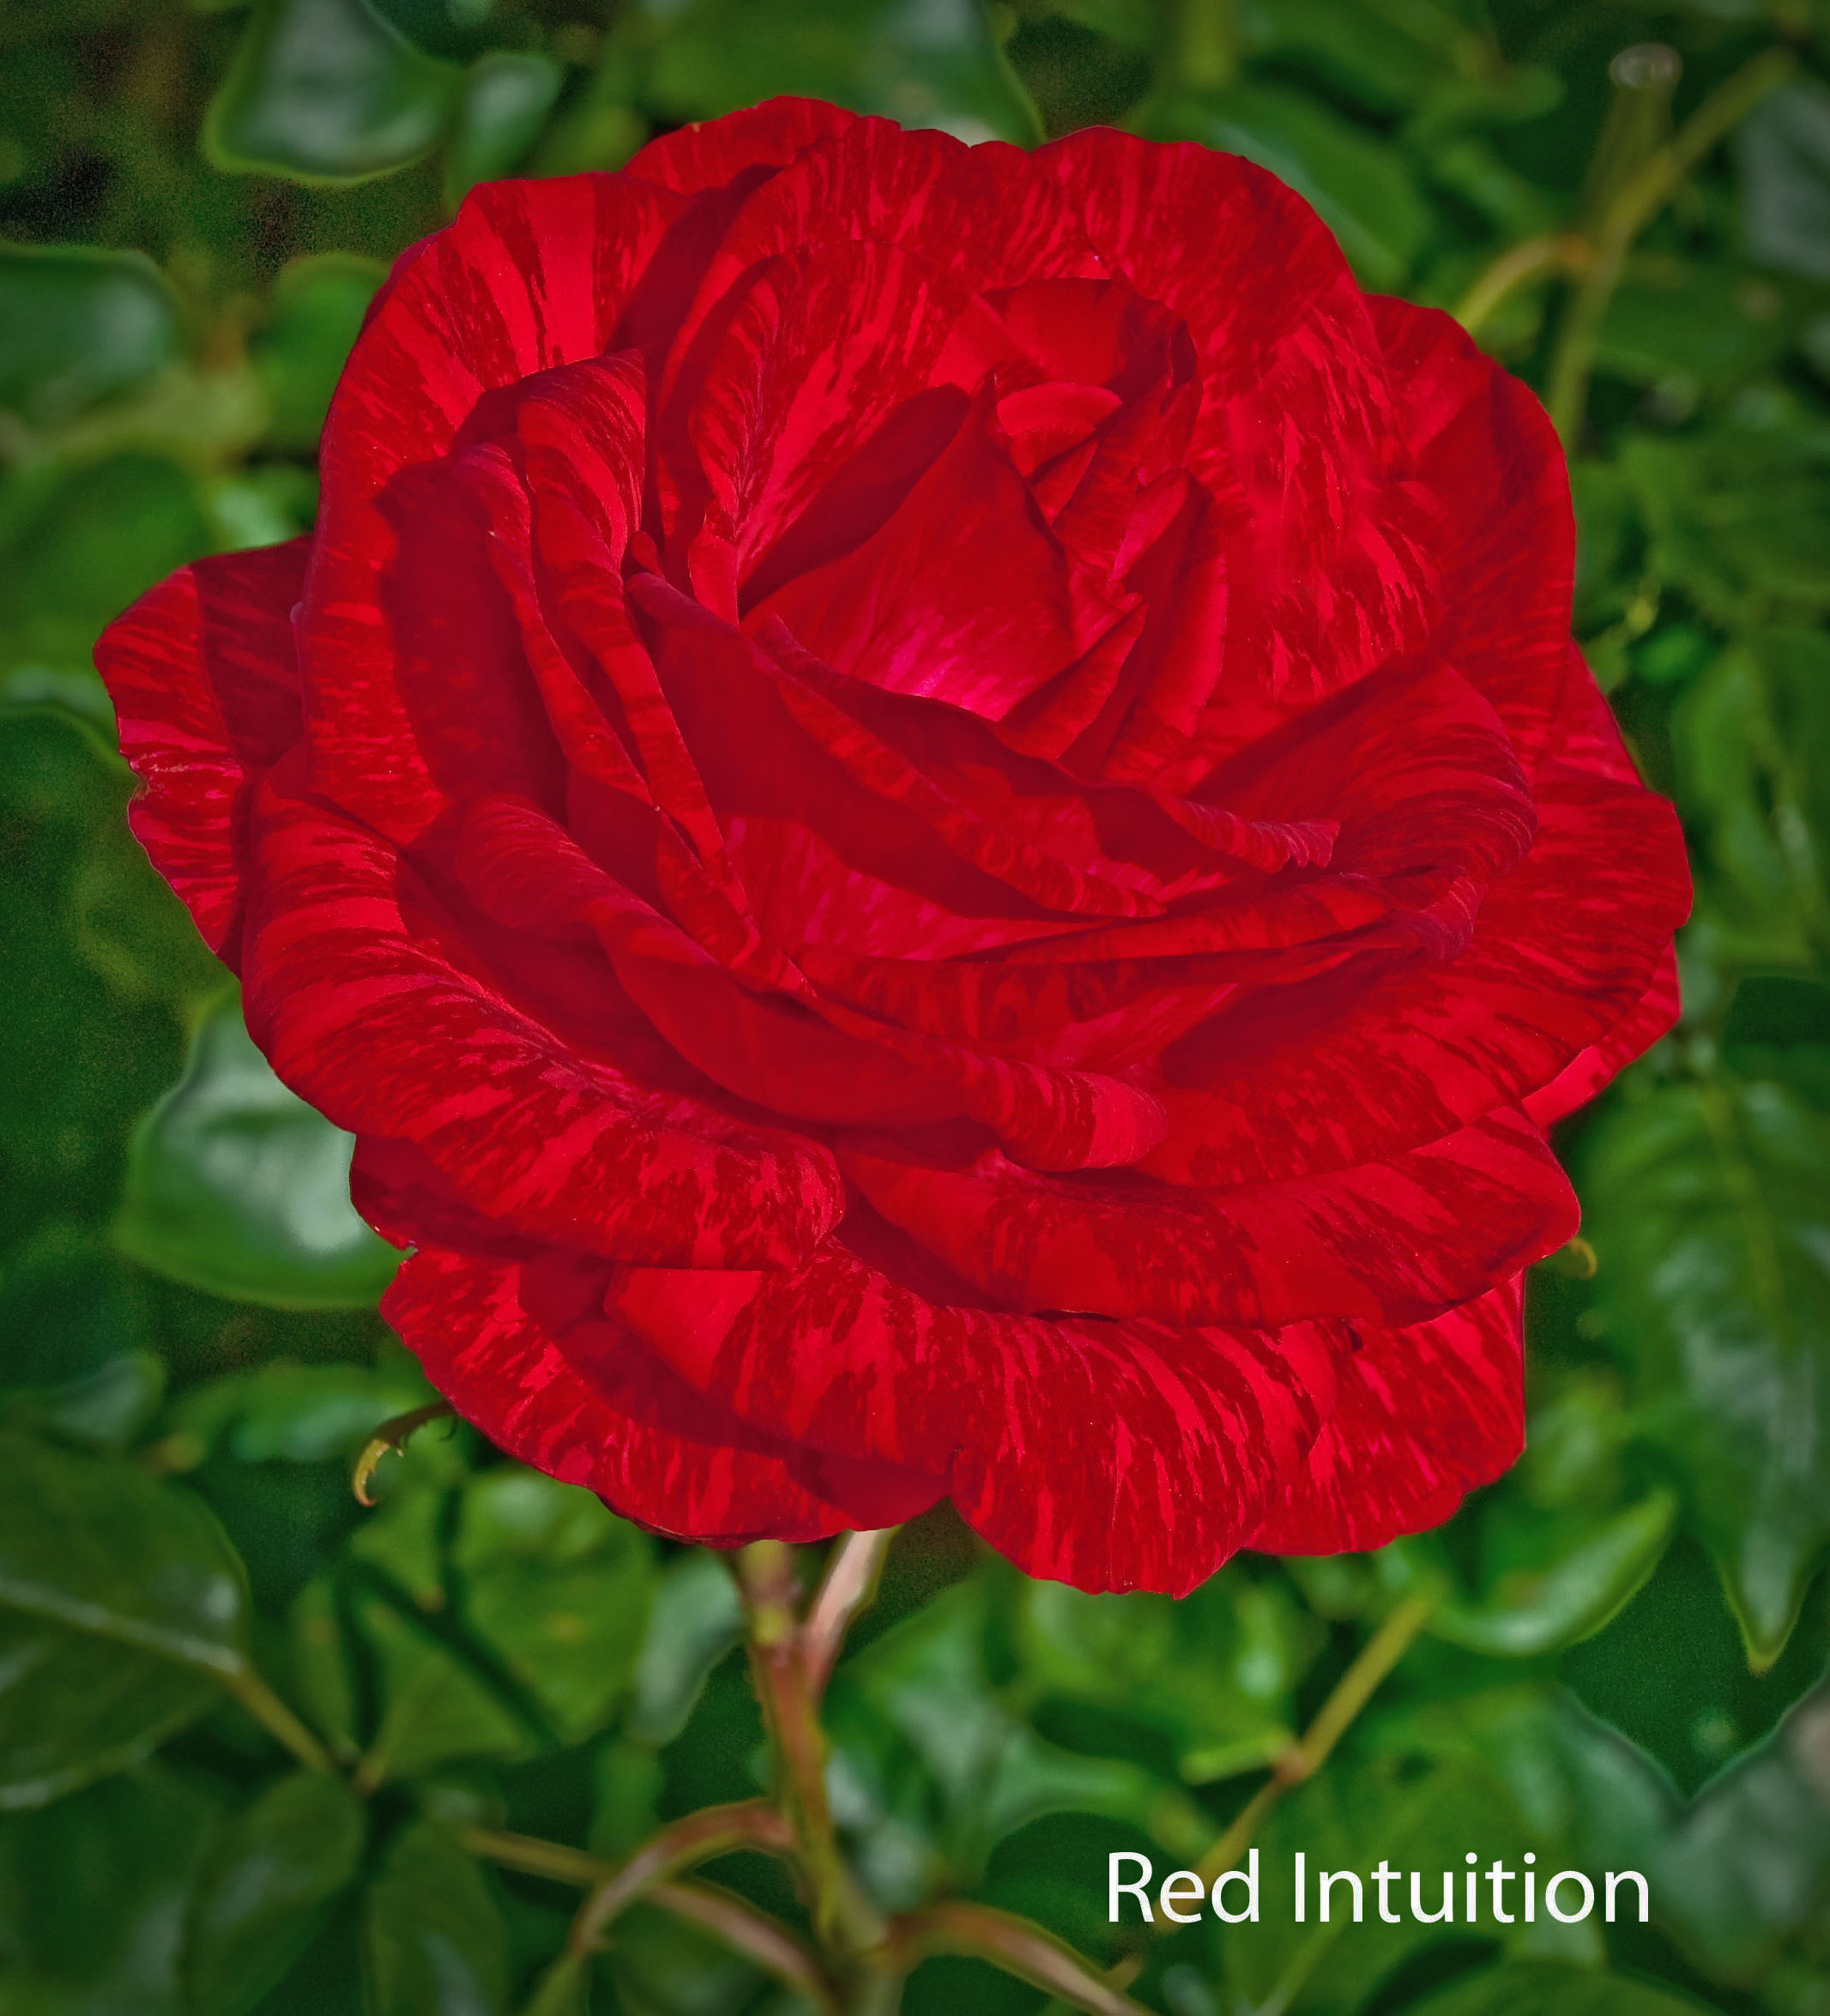 Red Intuition